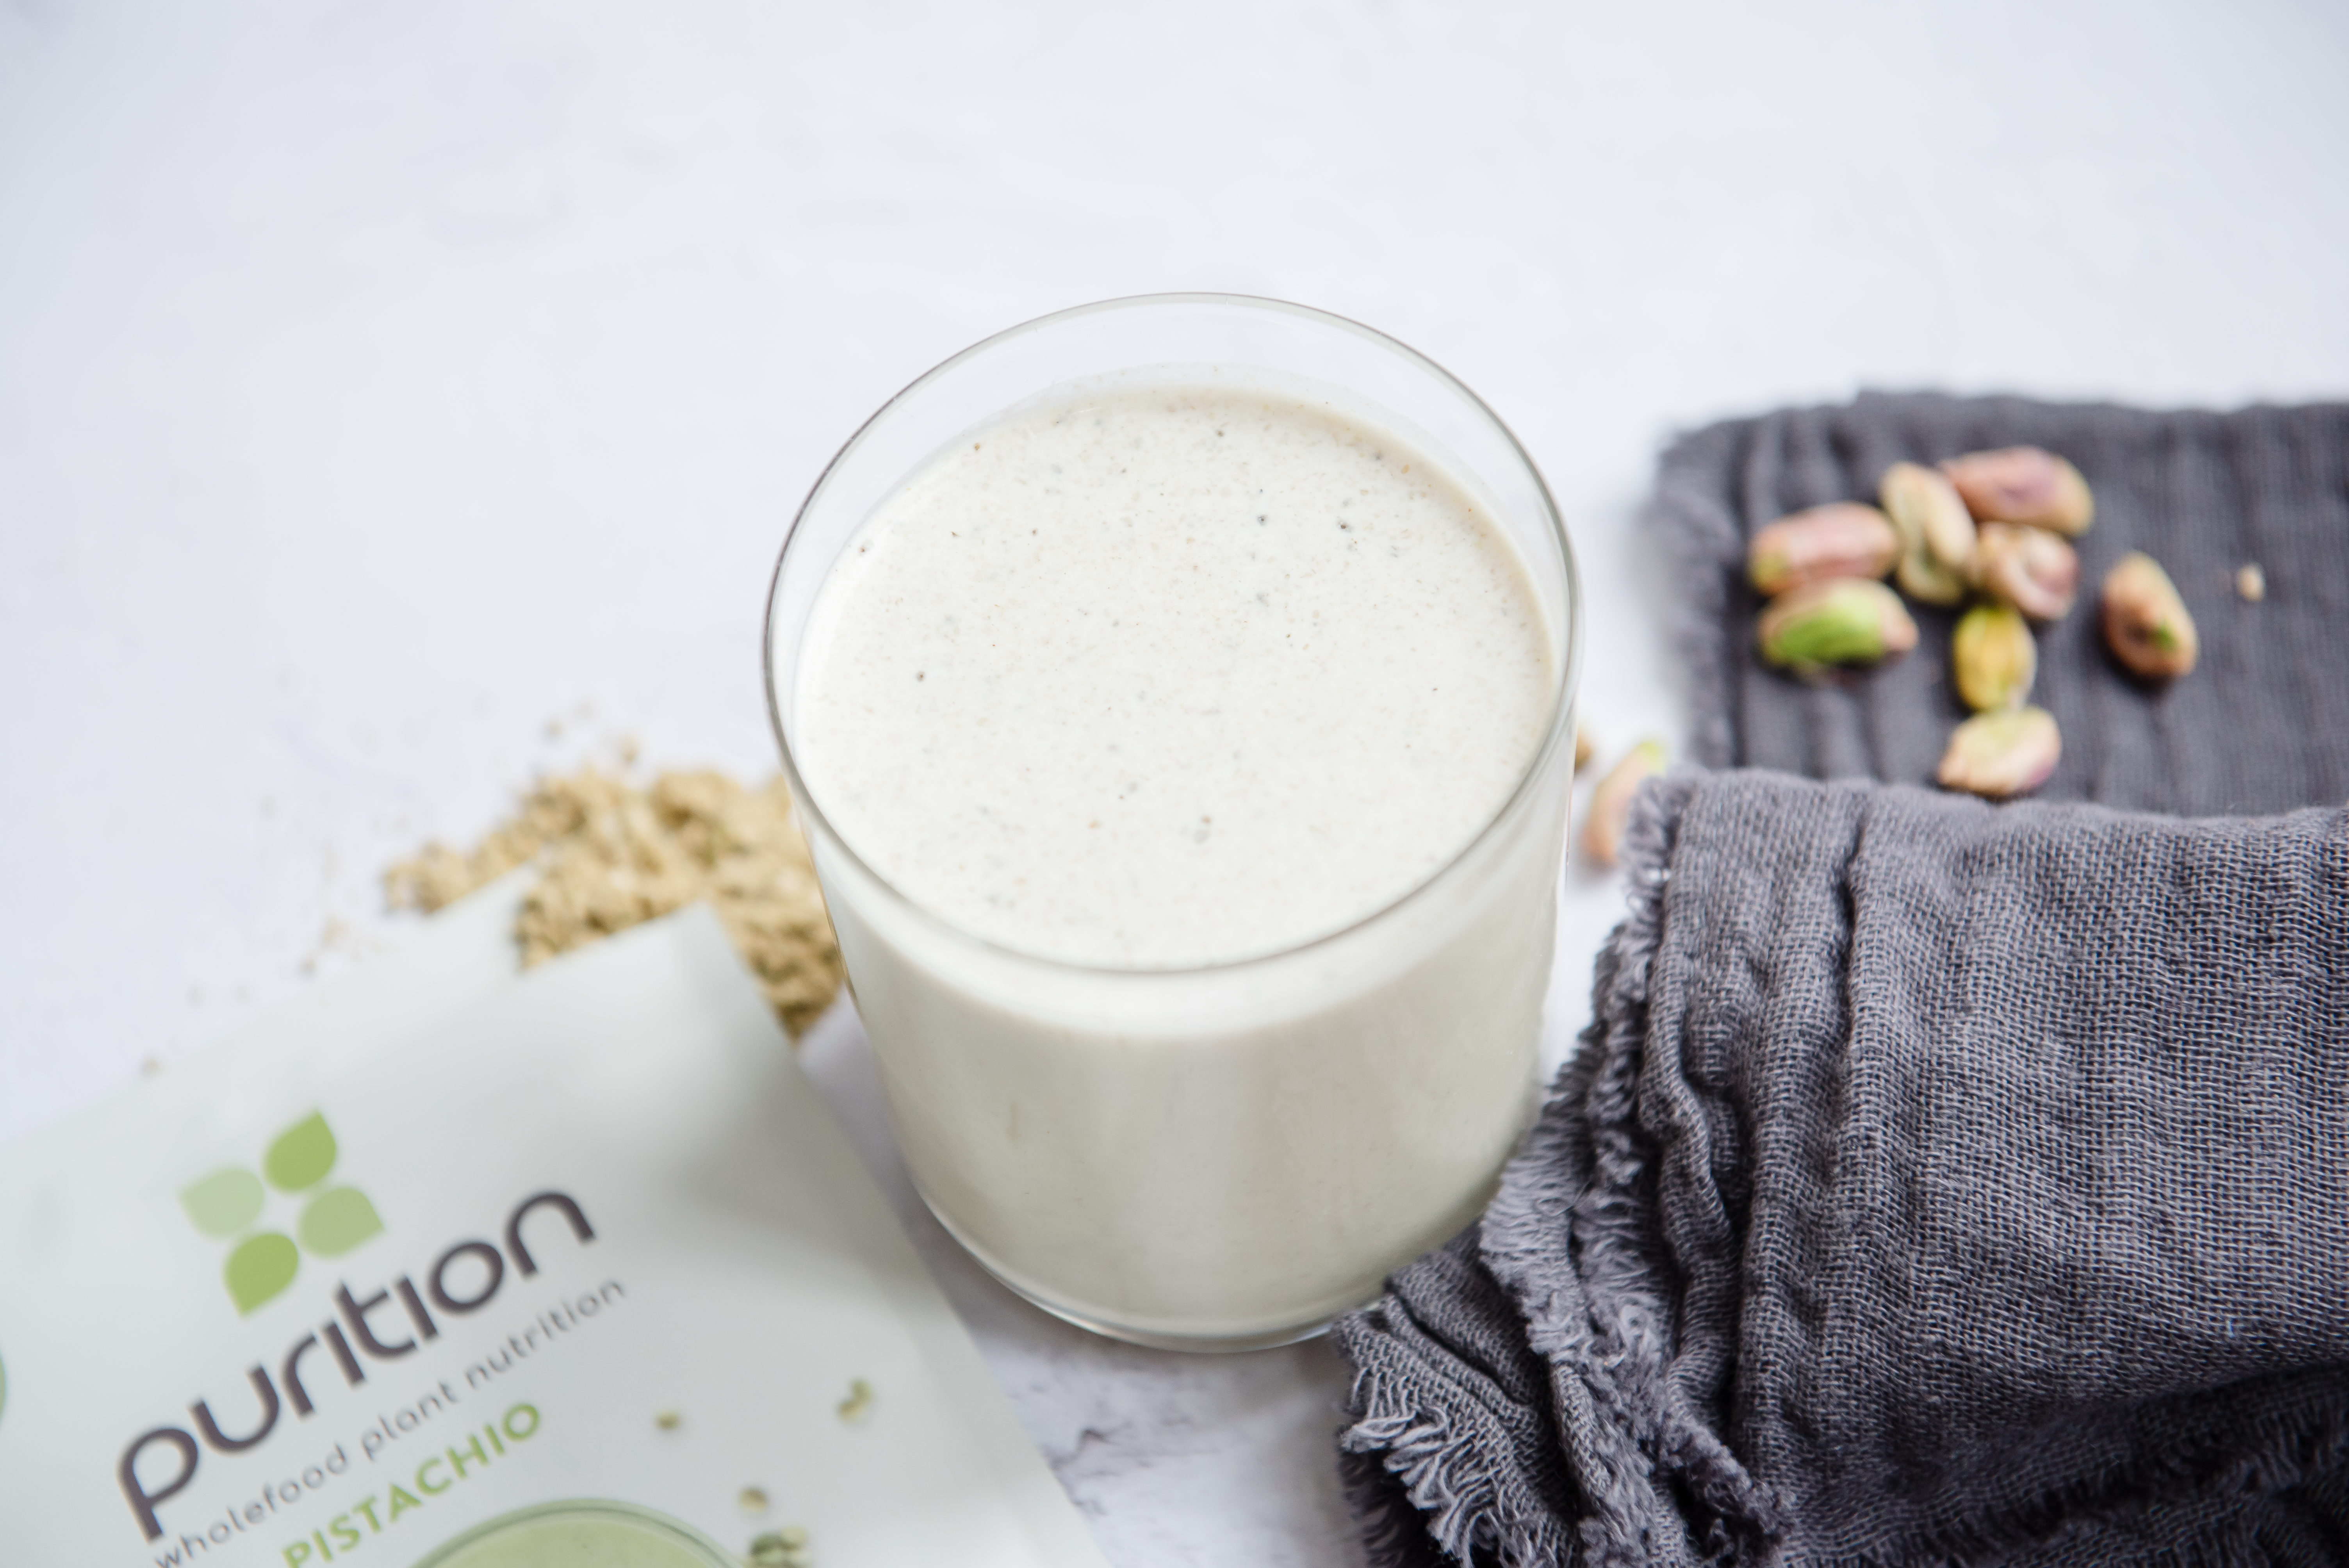 Vegan Purition Pistachio is a gut-friendly protein blend.